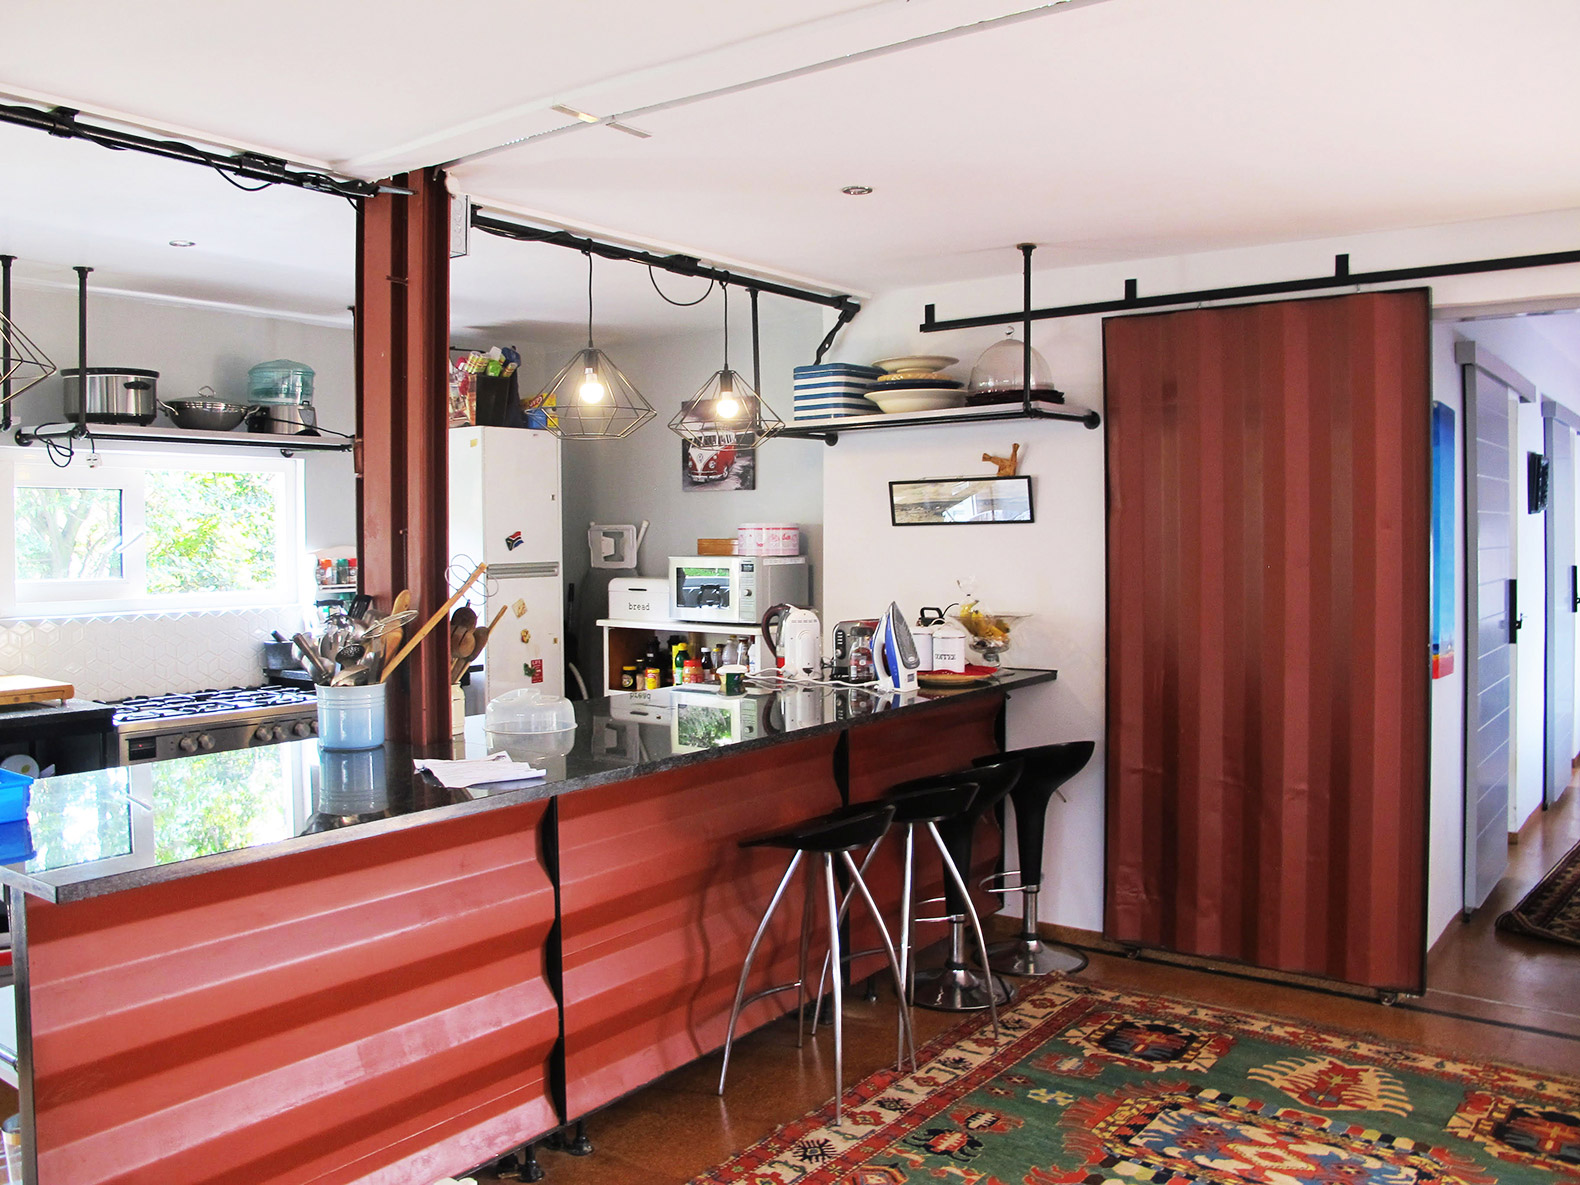 Shipping Containers Repurposed For Off Grid Home In South